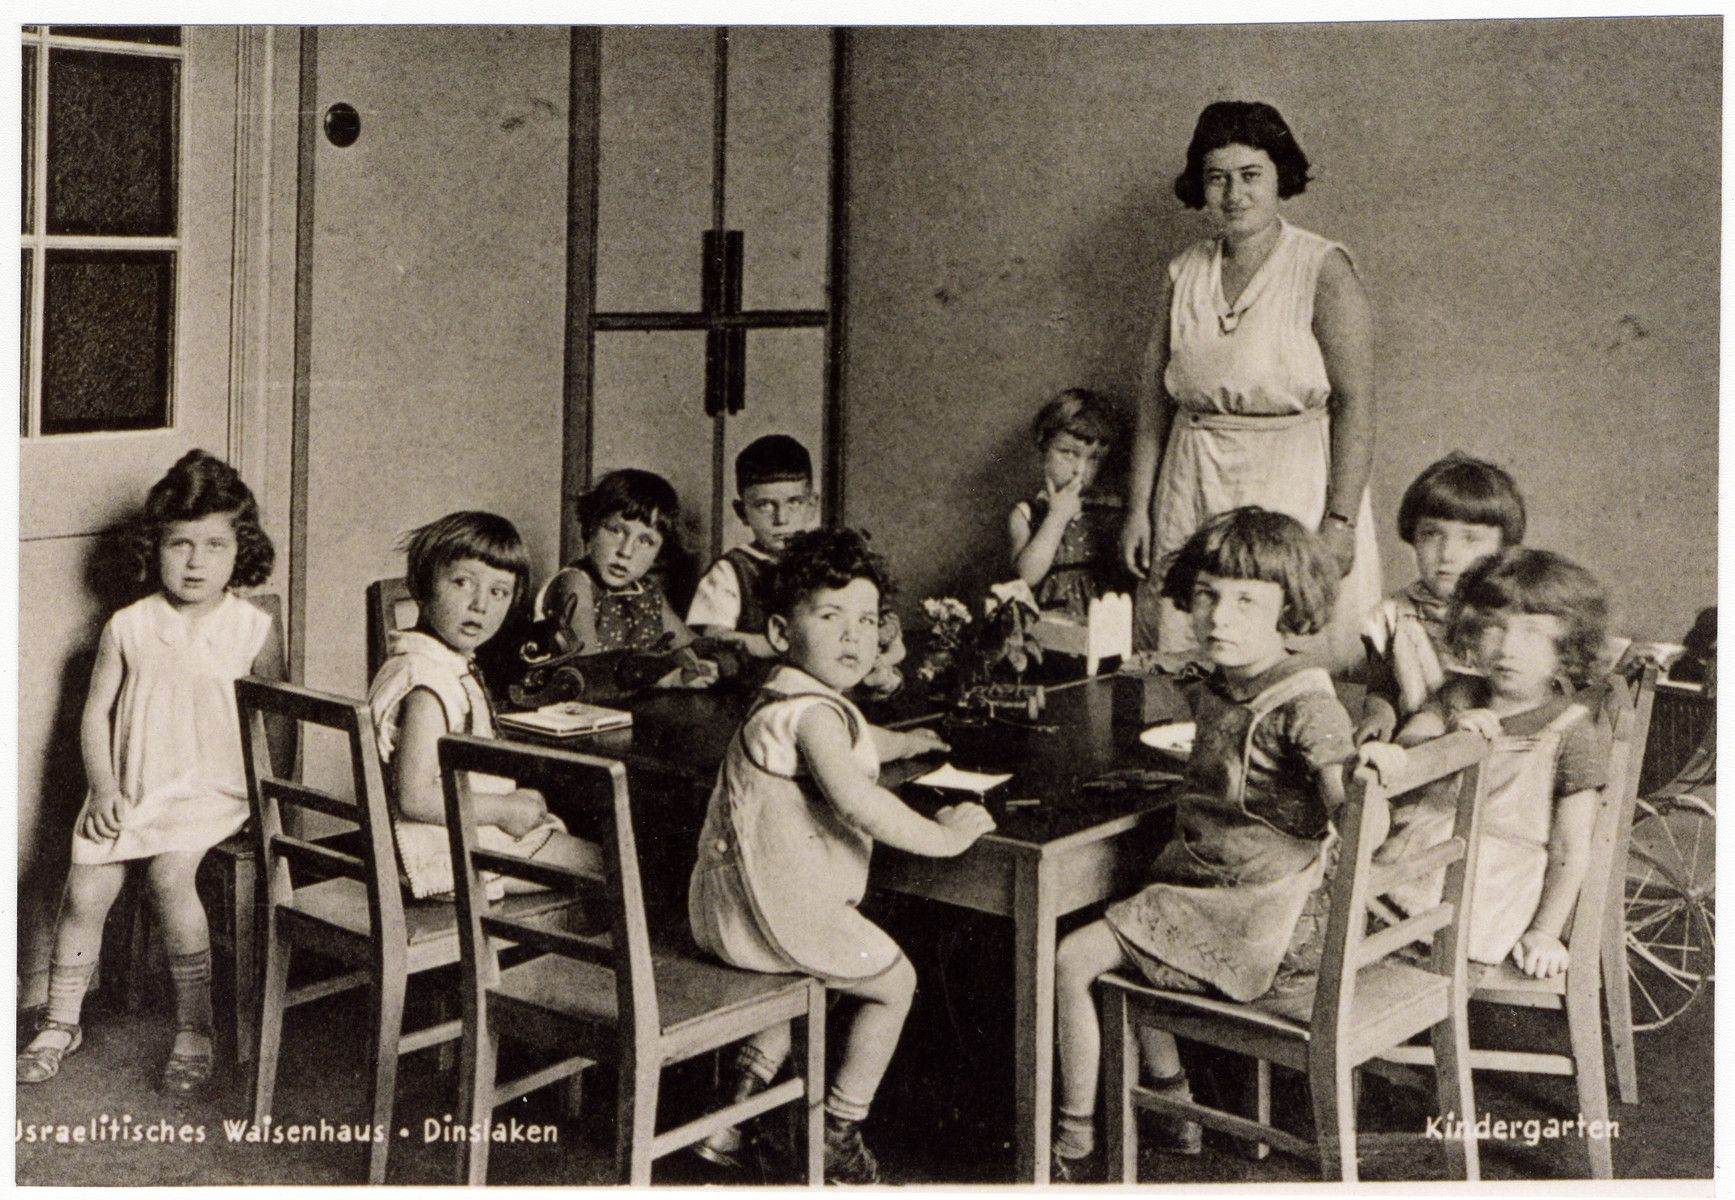 Younger children sit around a table in the Dinslaken children's home.  Hans Frank (the only boy in the photograph) is seated in the back, left corner of the table.